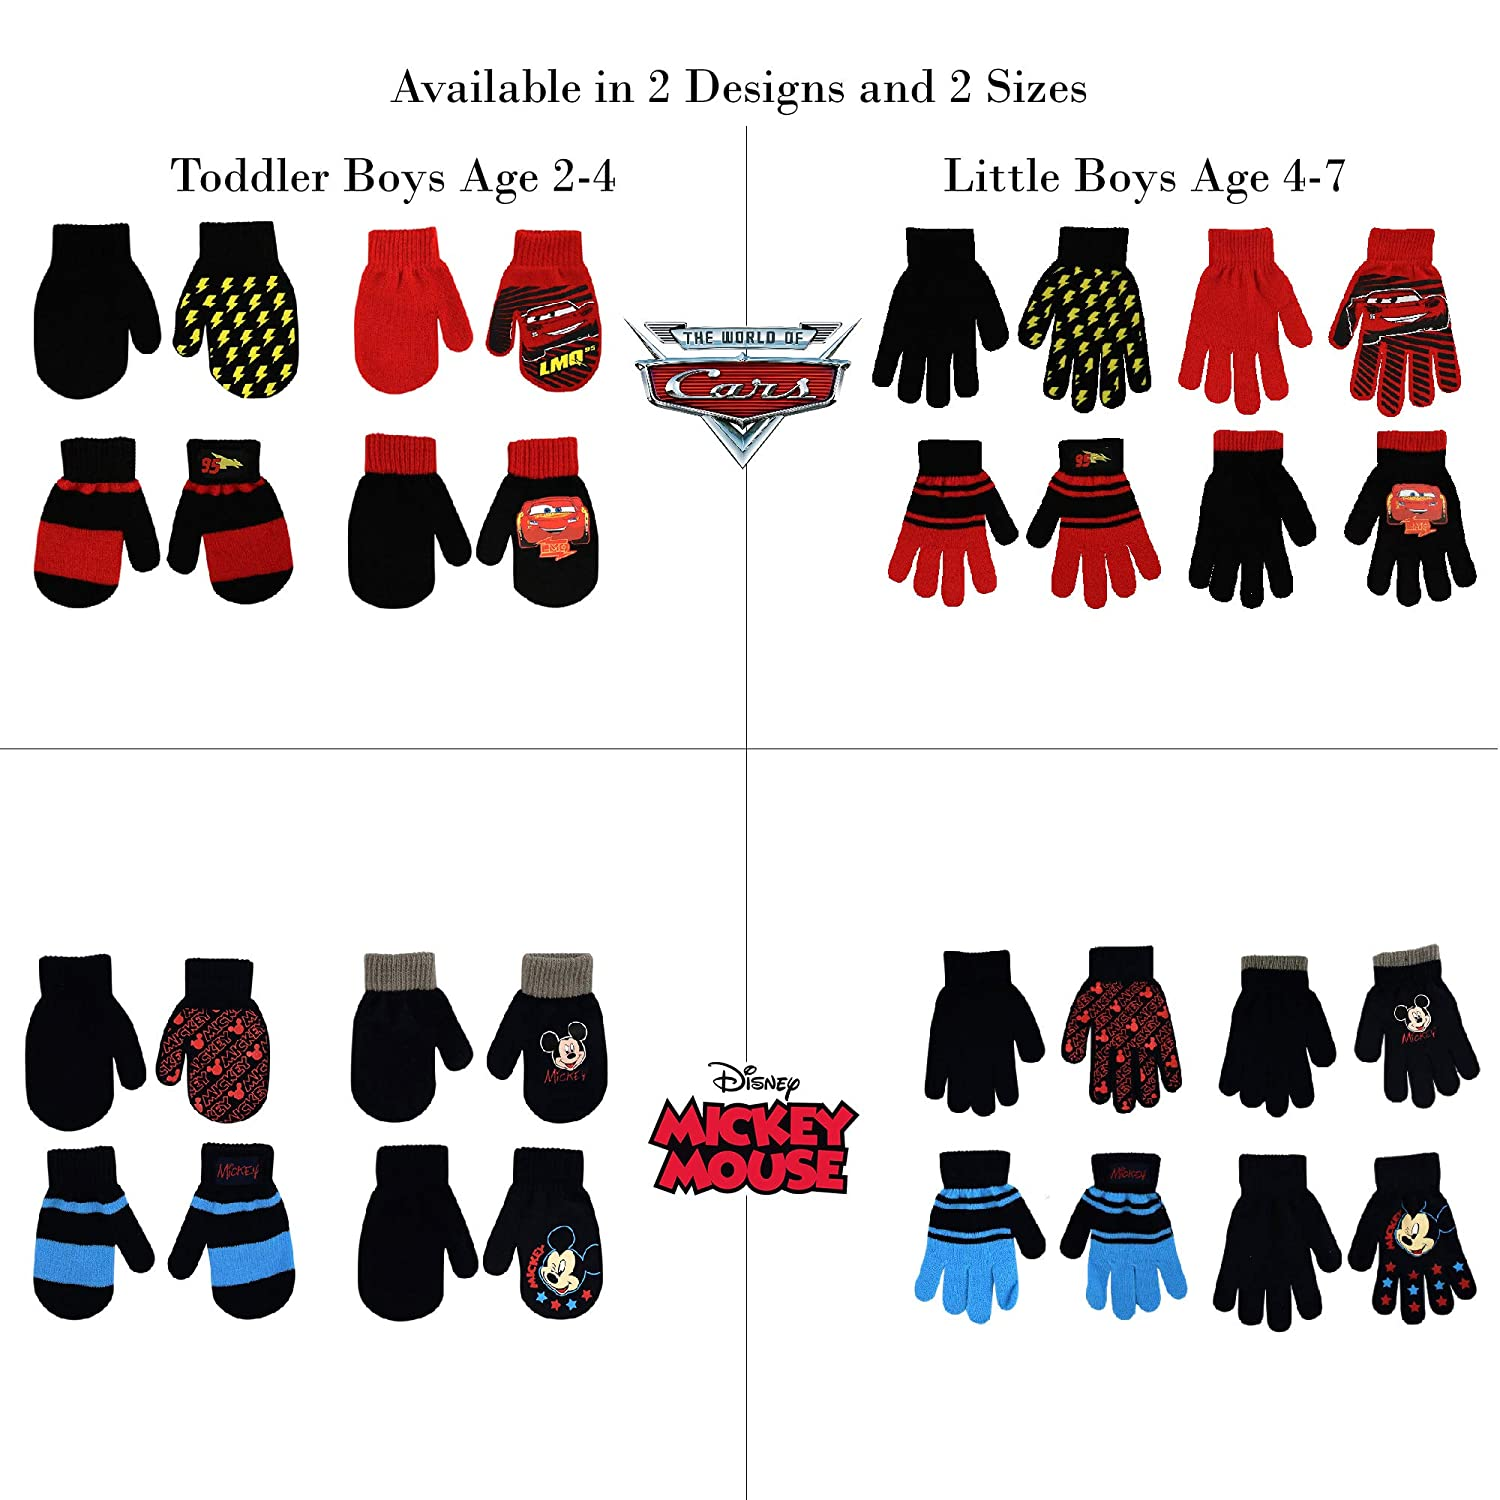 b0e968c8176 ... Age Disney Assorted Designs 4 Pair Gloves or Mittens Cold Weather Set